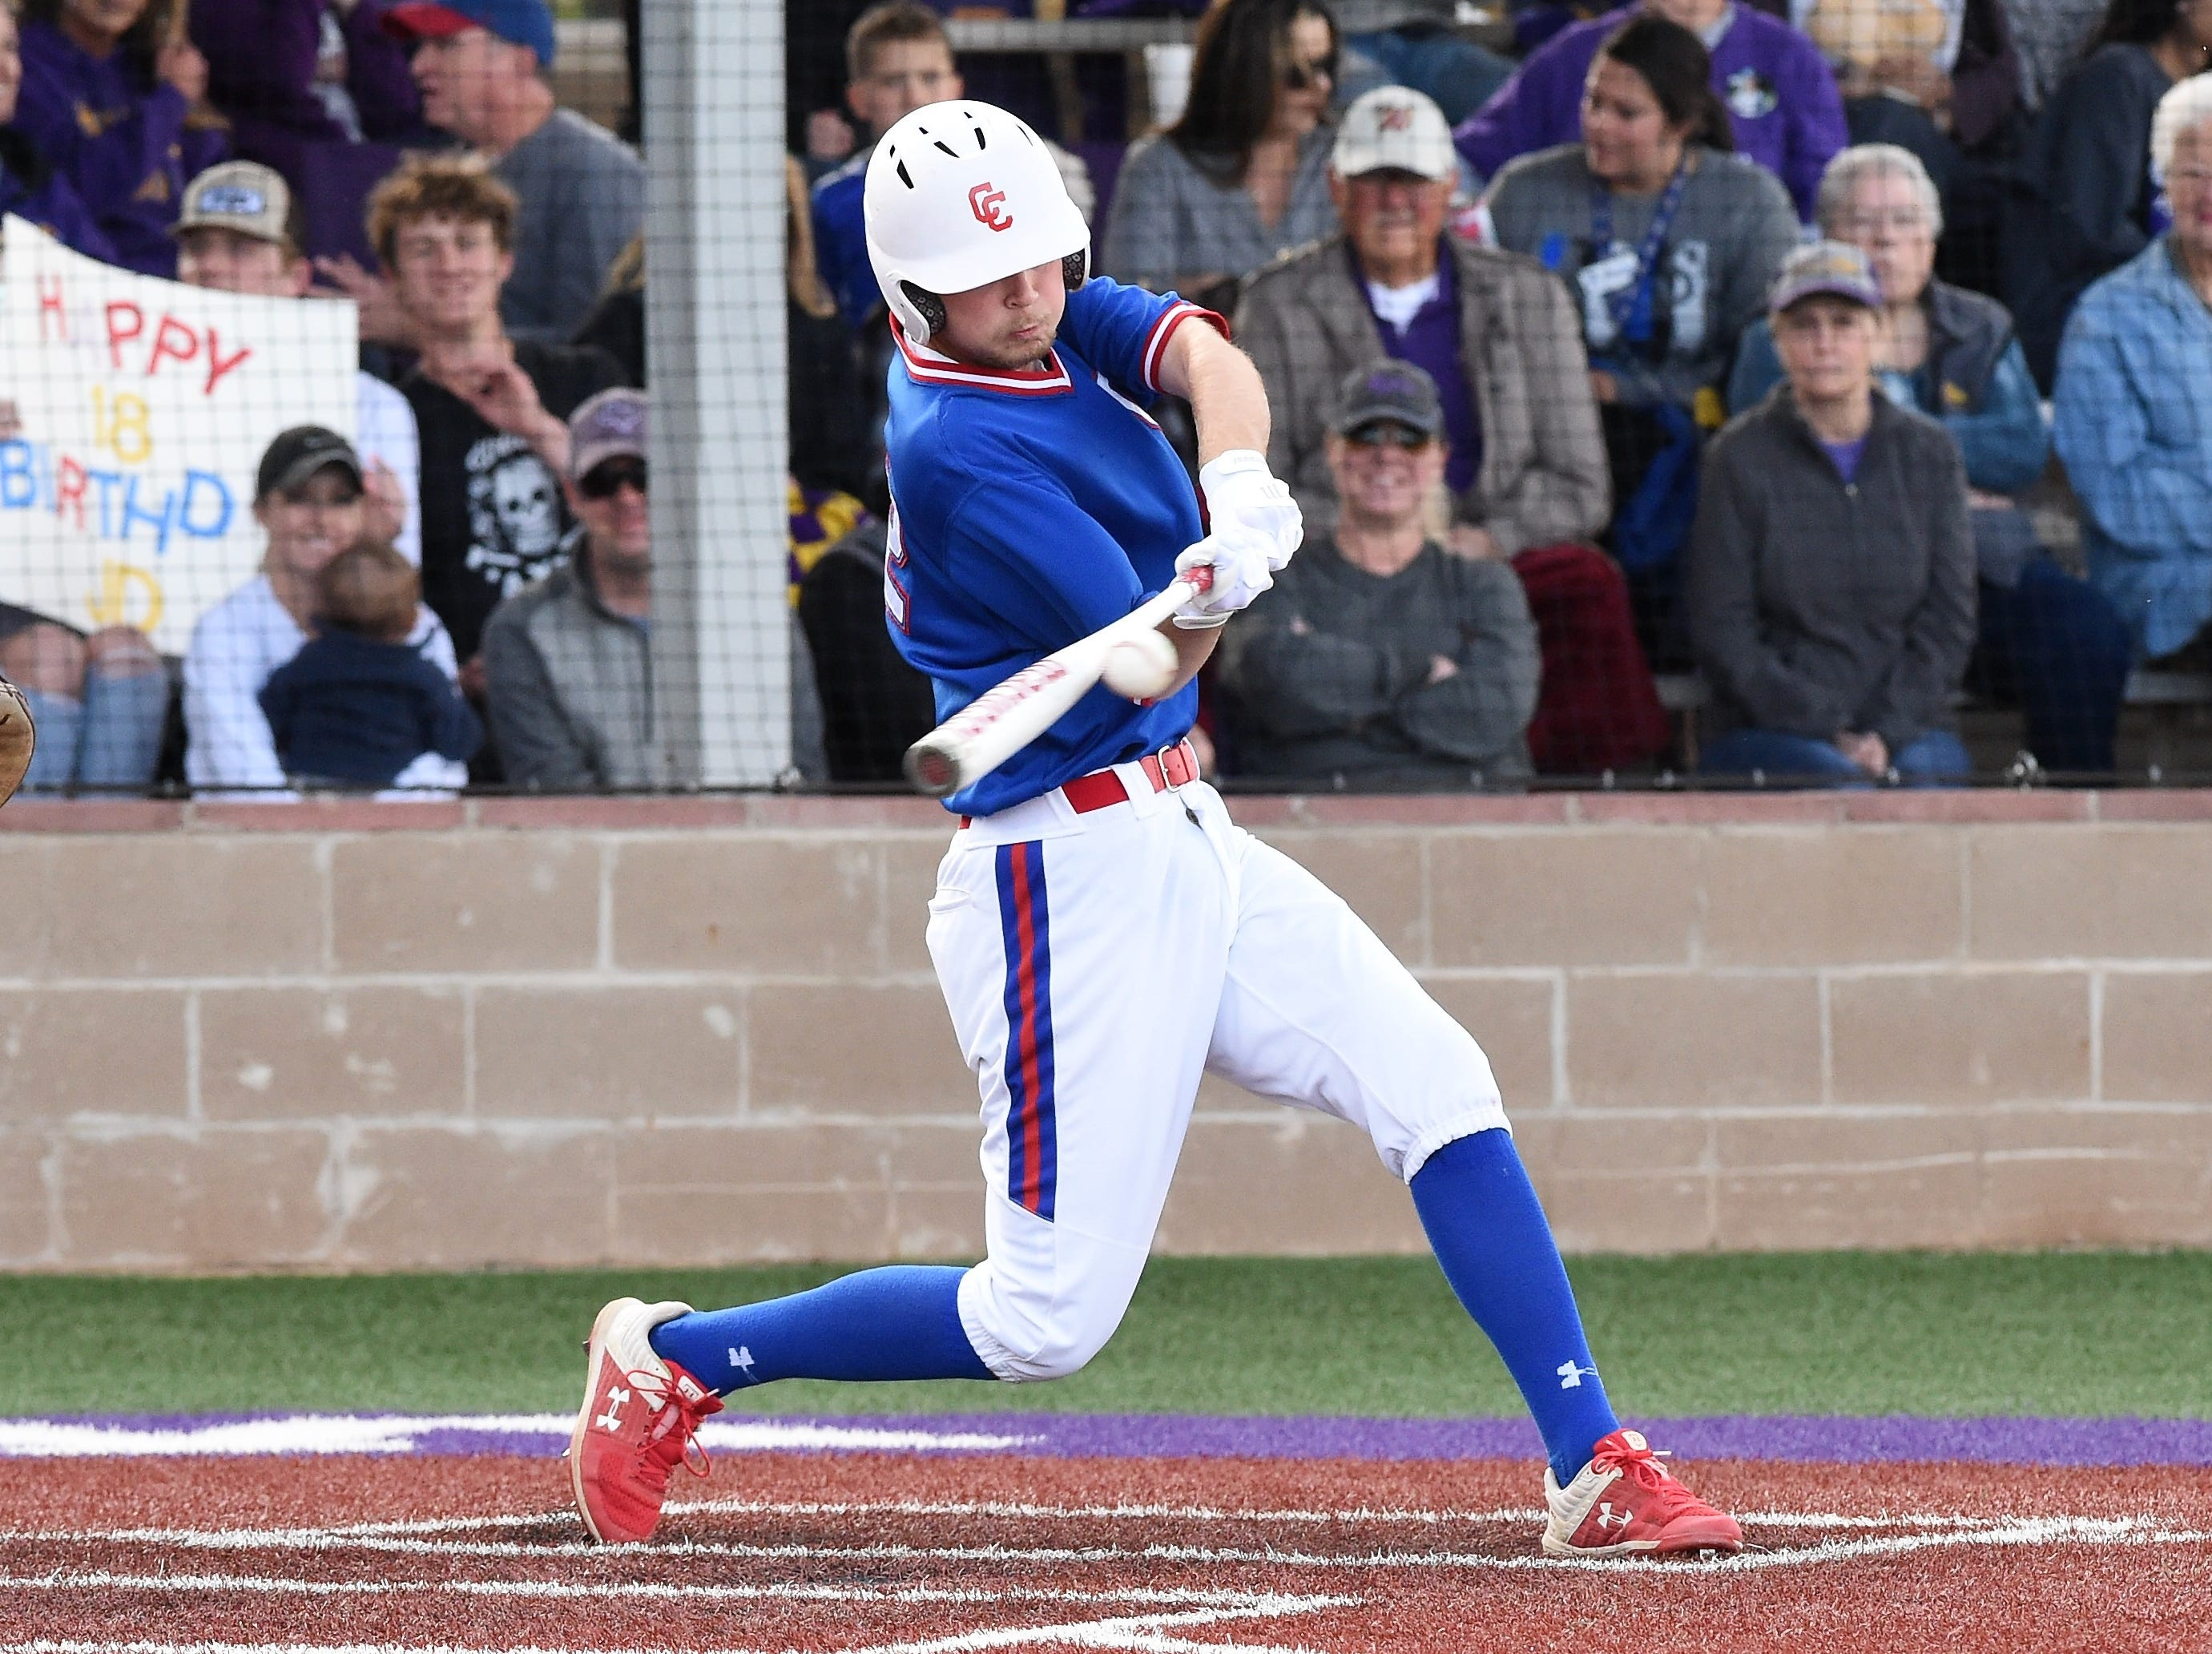 Cooper's J.D. Creel (22) makes contact against Wylie at Bulldog Field on Friday, April 12, 2019. Creel had a hit and a walk in the 4-3 loss.